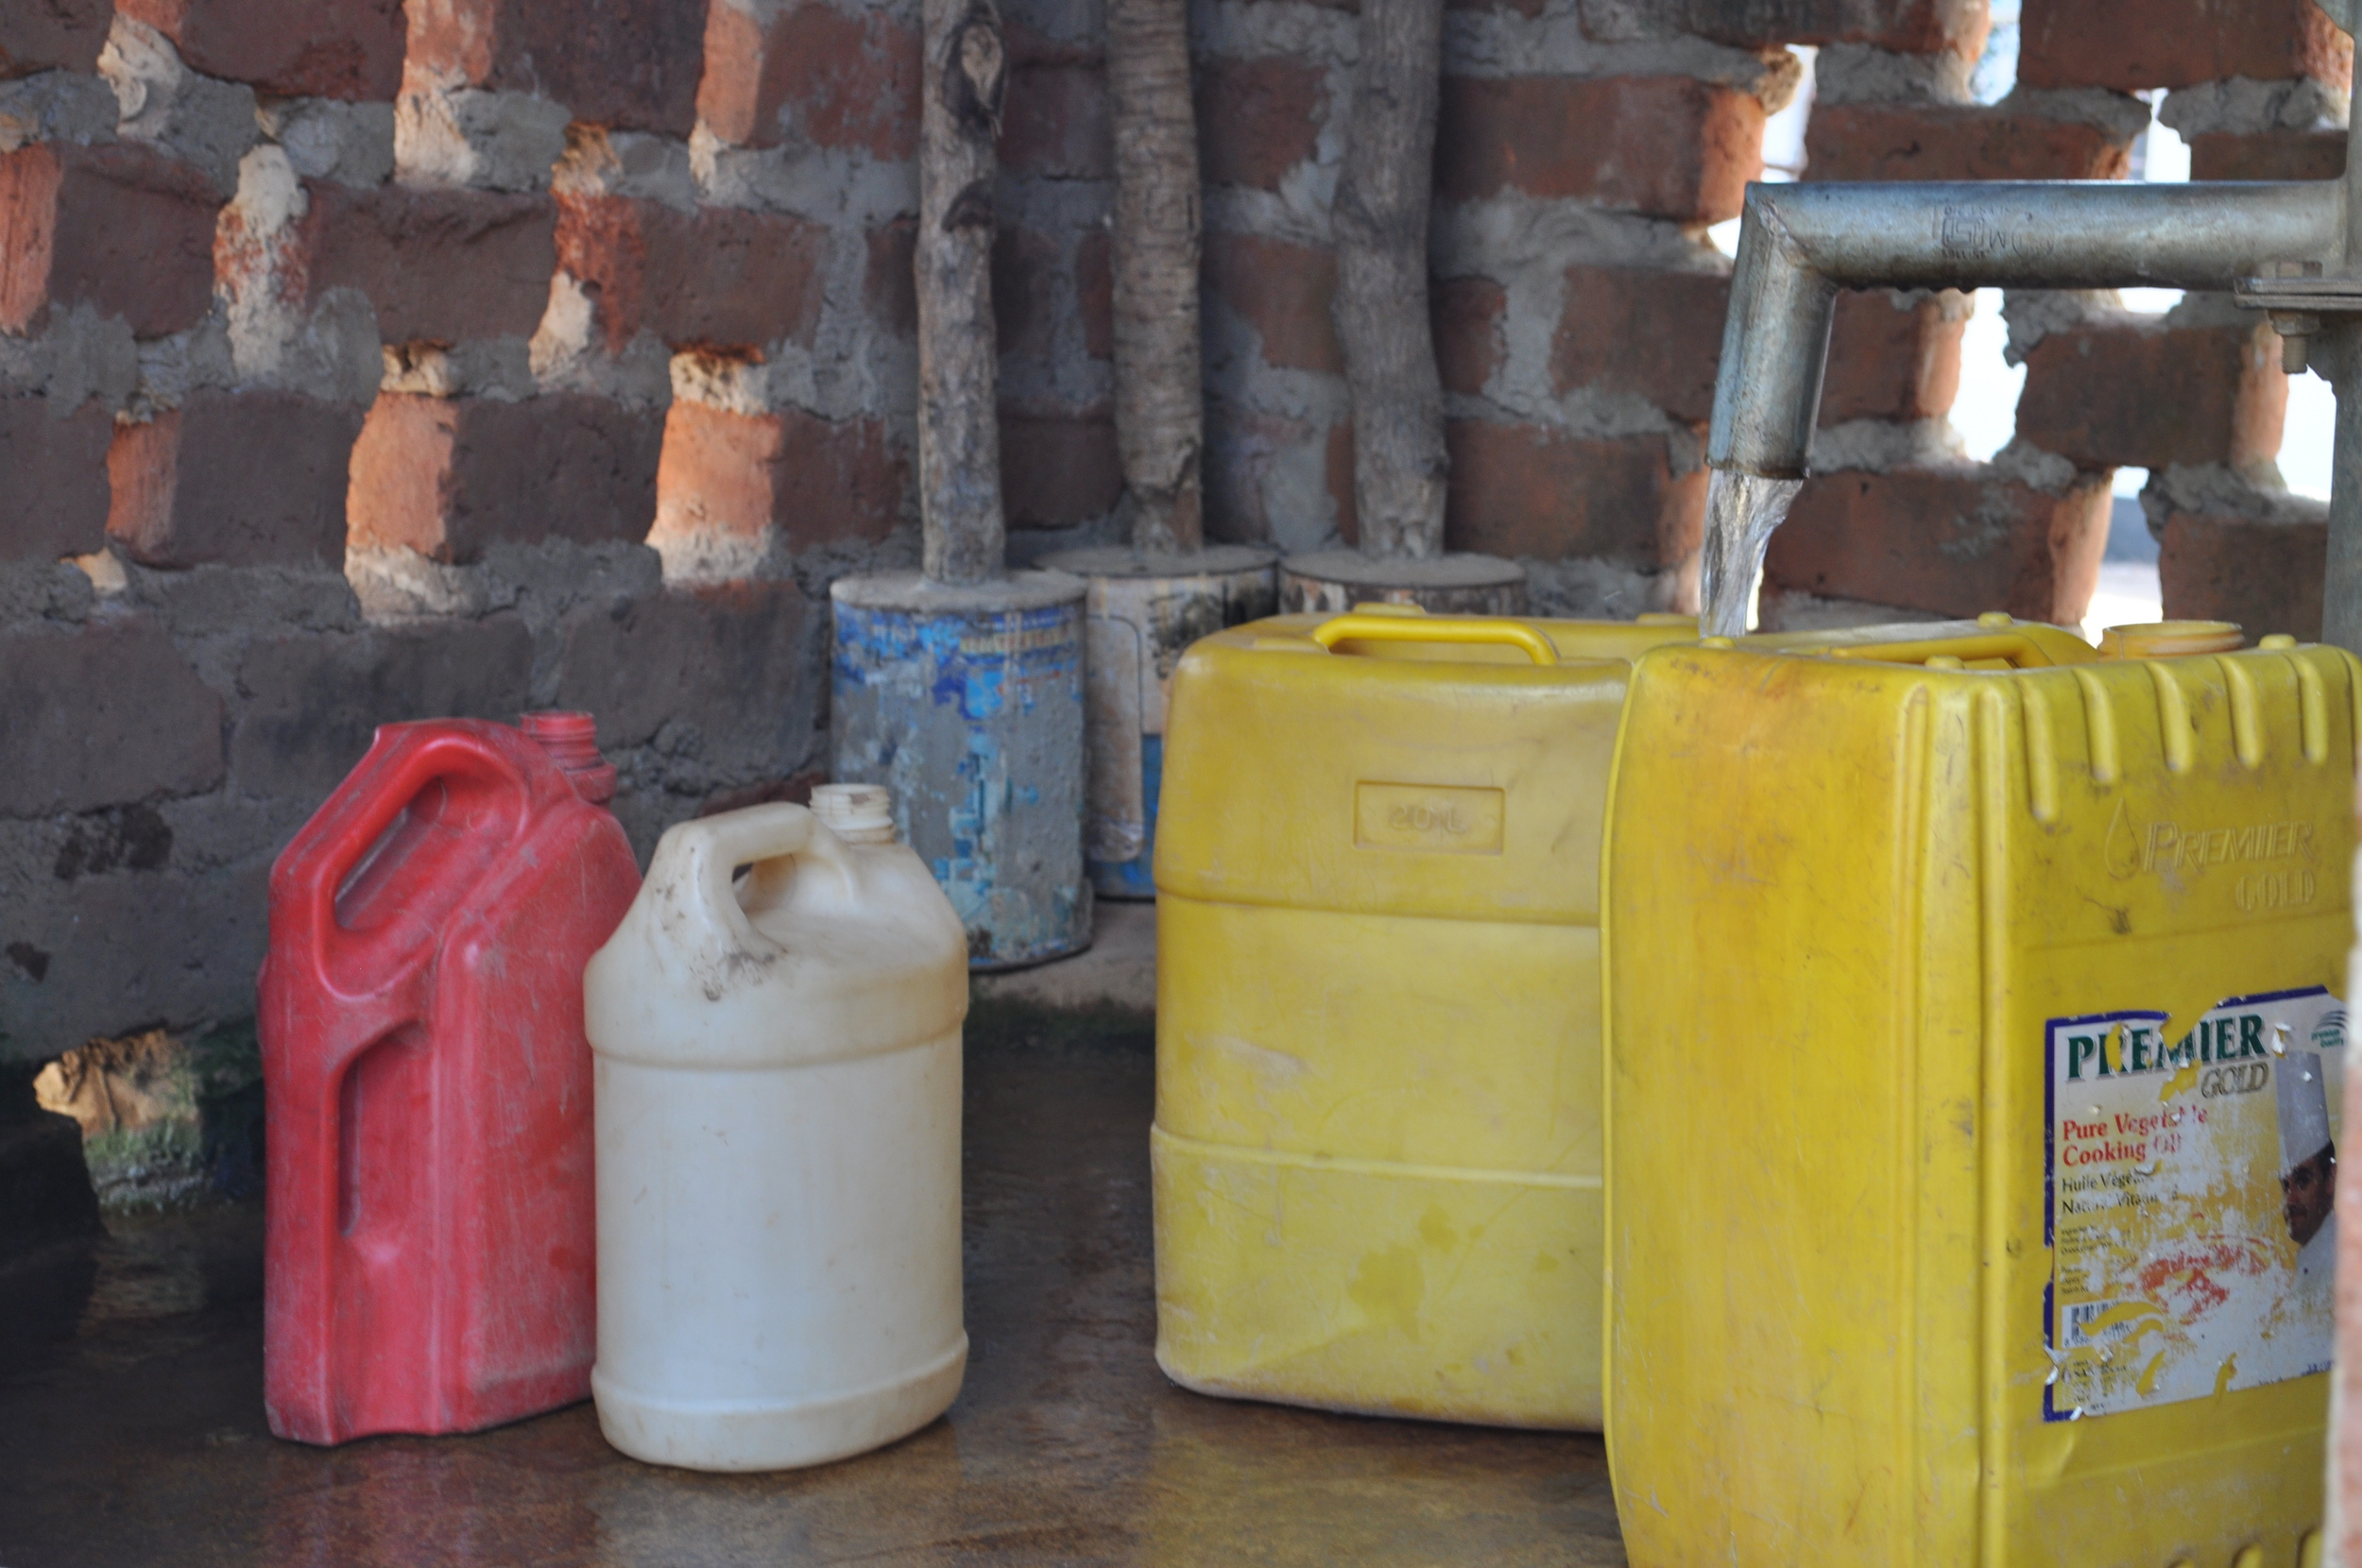 Jerry Cans in line at Cohombe Village Borehole